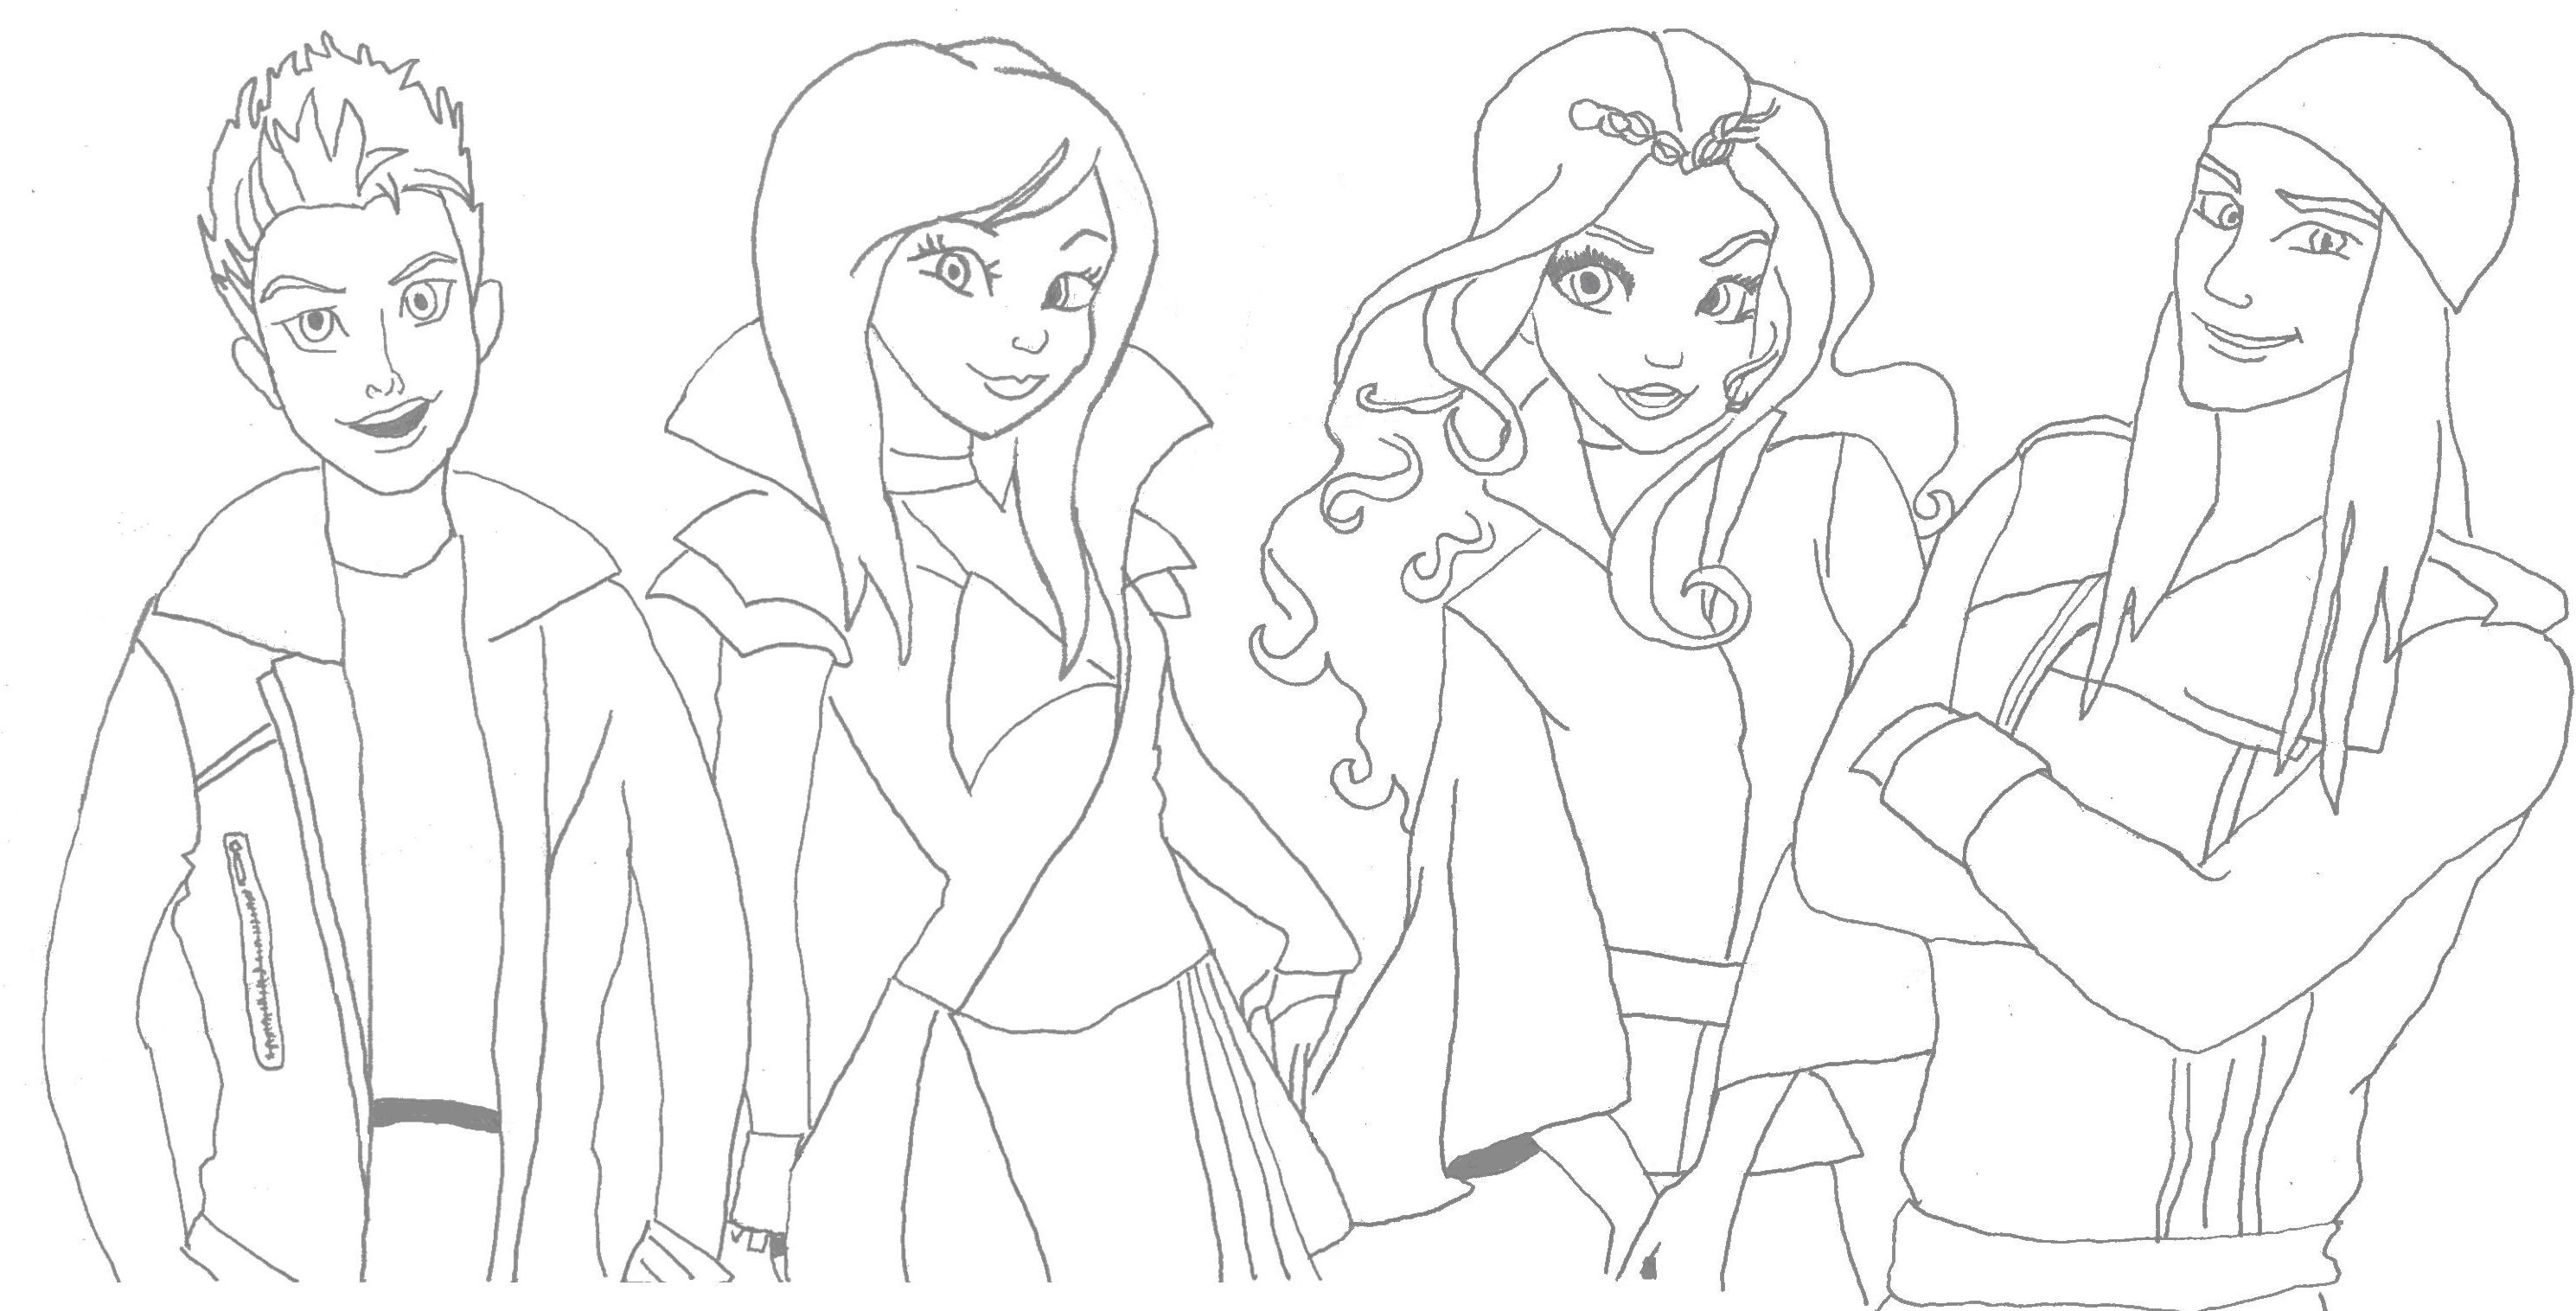 Disney Descendants Coloring Sheet This Is My First Pin I Could Not Find Any Coloring Sheet Descendants Coloring Pages Disney Coloring Pages Coloring Books